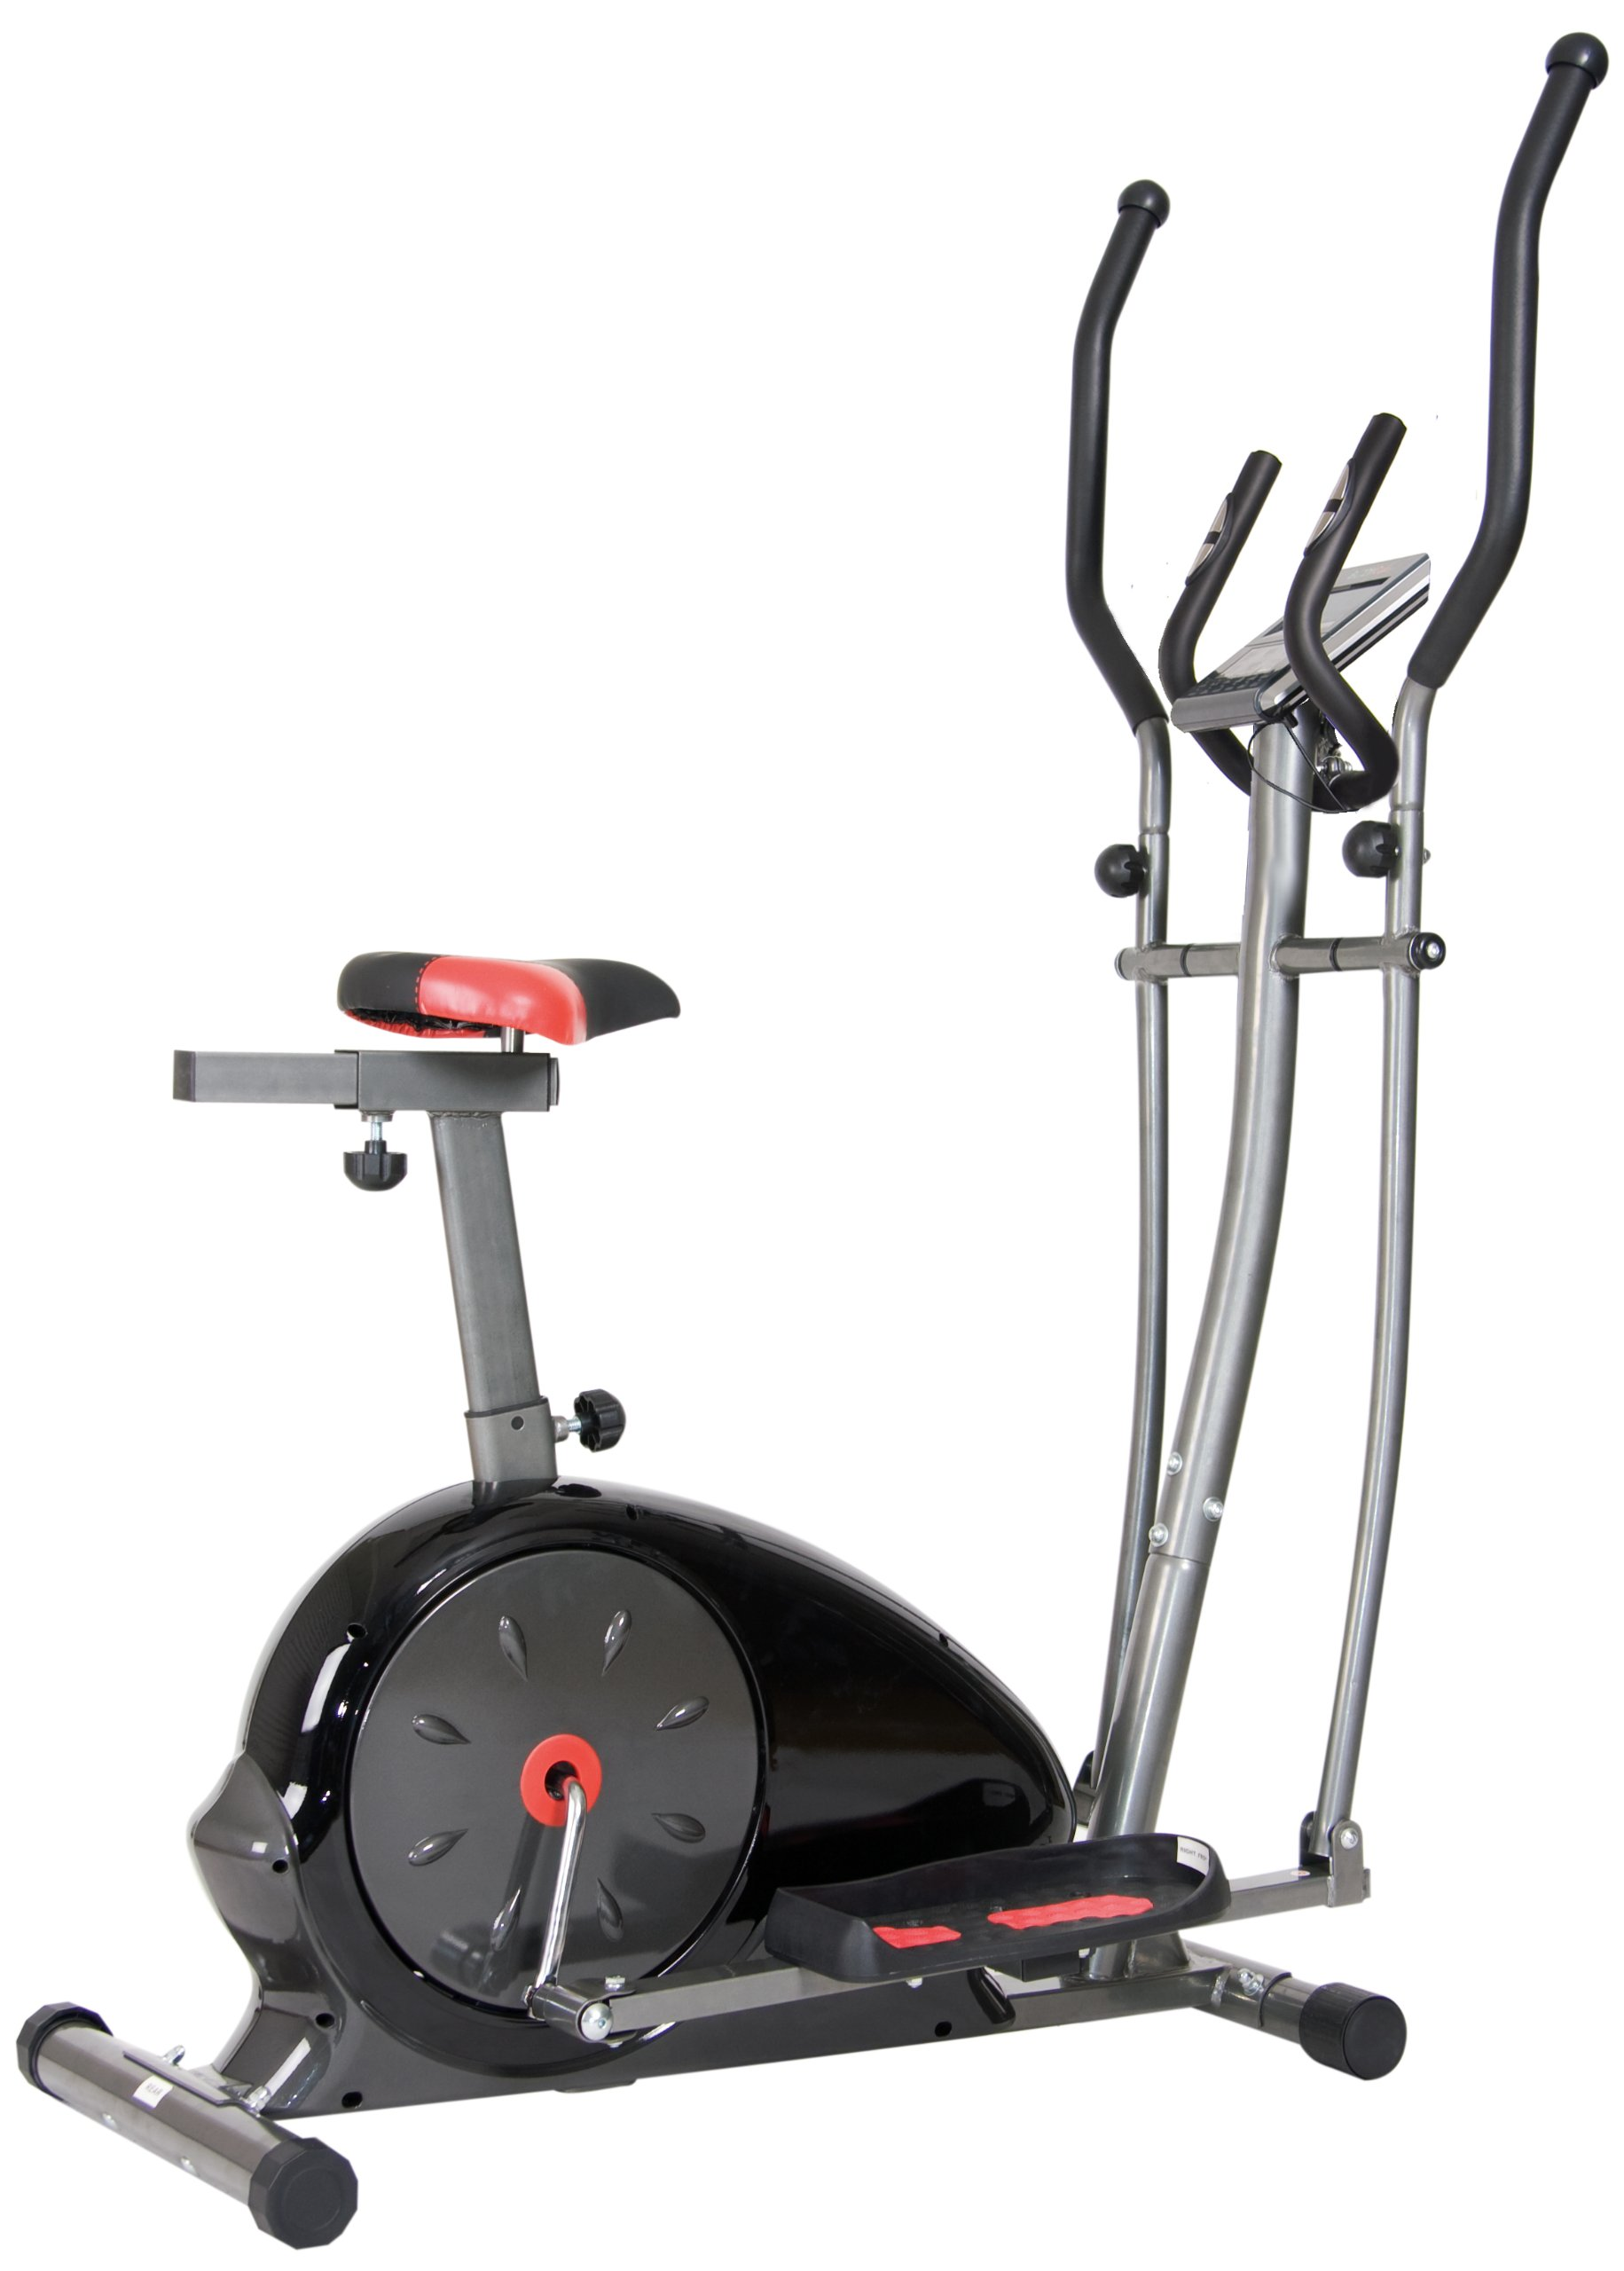 Body Champ 2 in 1 Magnetic Elliptical Workout and Upright Exercise Bike with Heart Rate, Computer Resistance Exercise Machine / Cardio Home Office Workout Machine